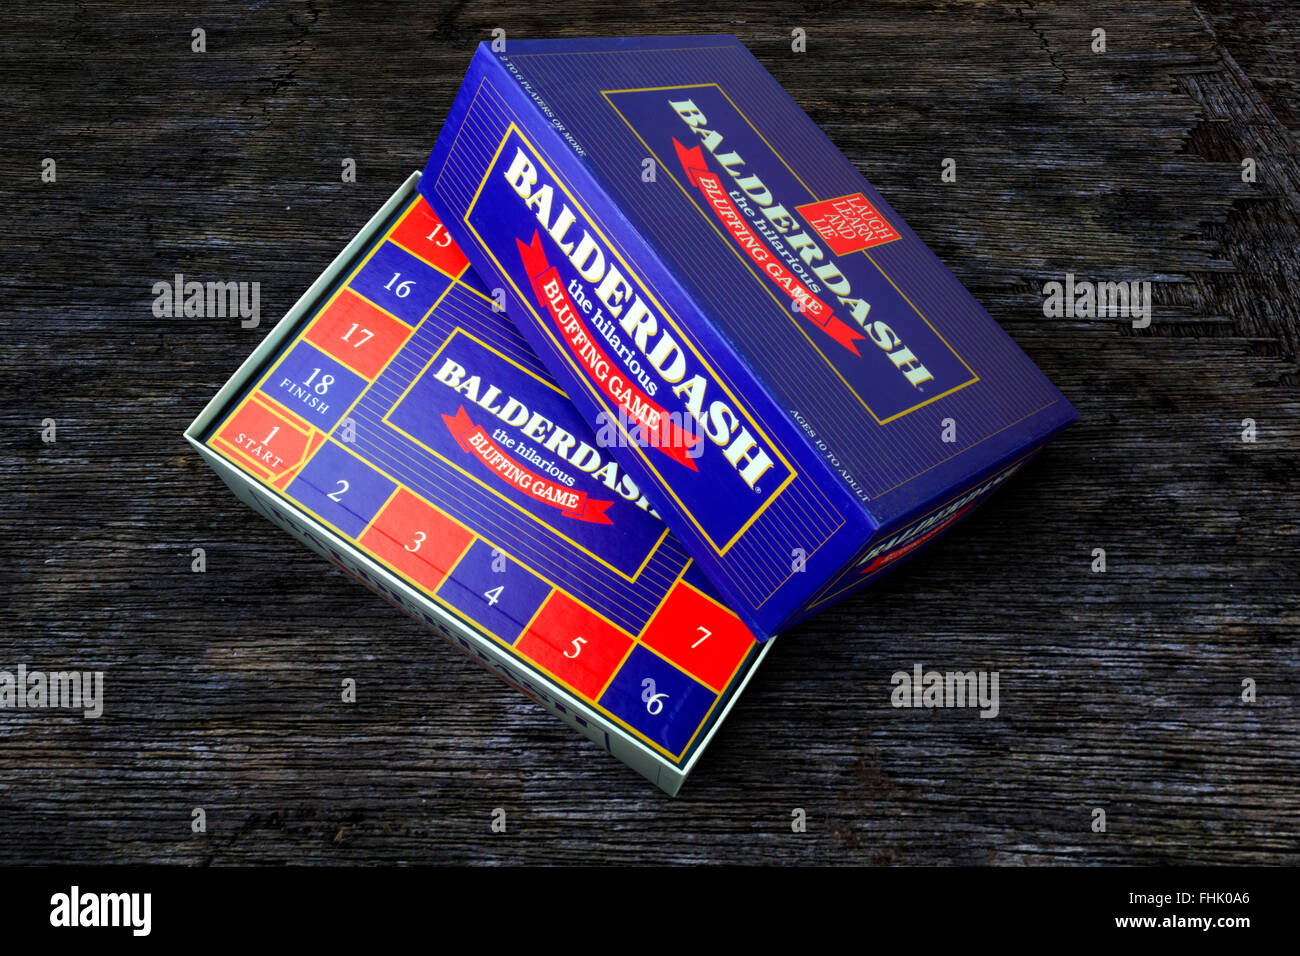 Balderdash bluffing board game on a wooden background Stock Photo